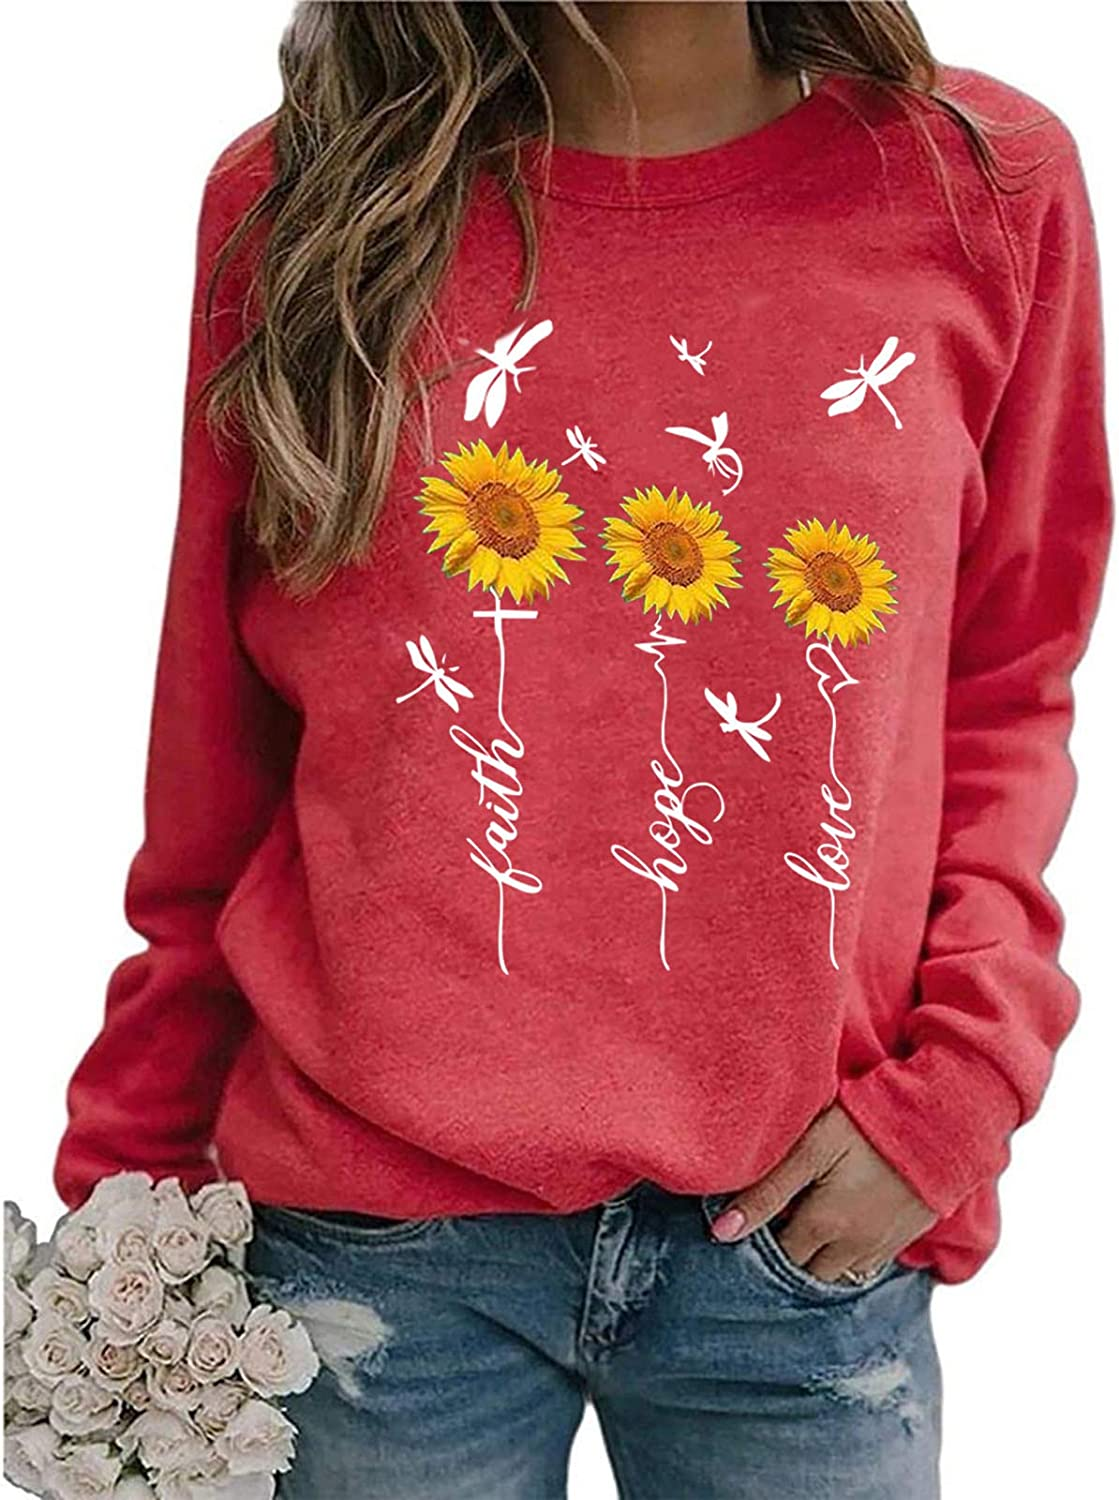 Oiumov Sweatshirts for Women Hoodie Pullover Floral Printed Long Sleeve Tops Pullover Jumper Sweater Shirts Blouse